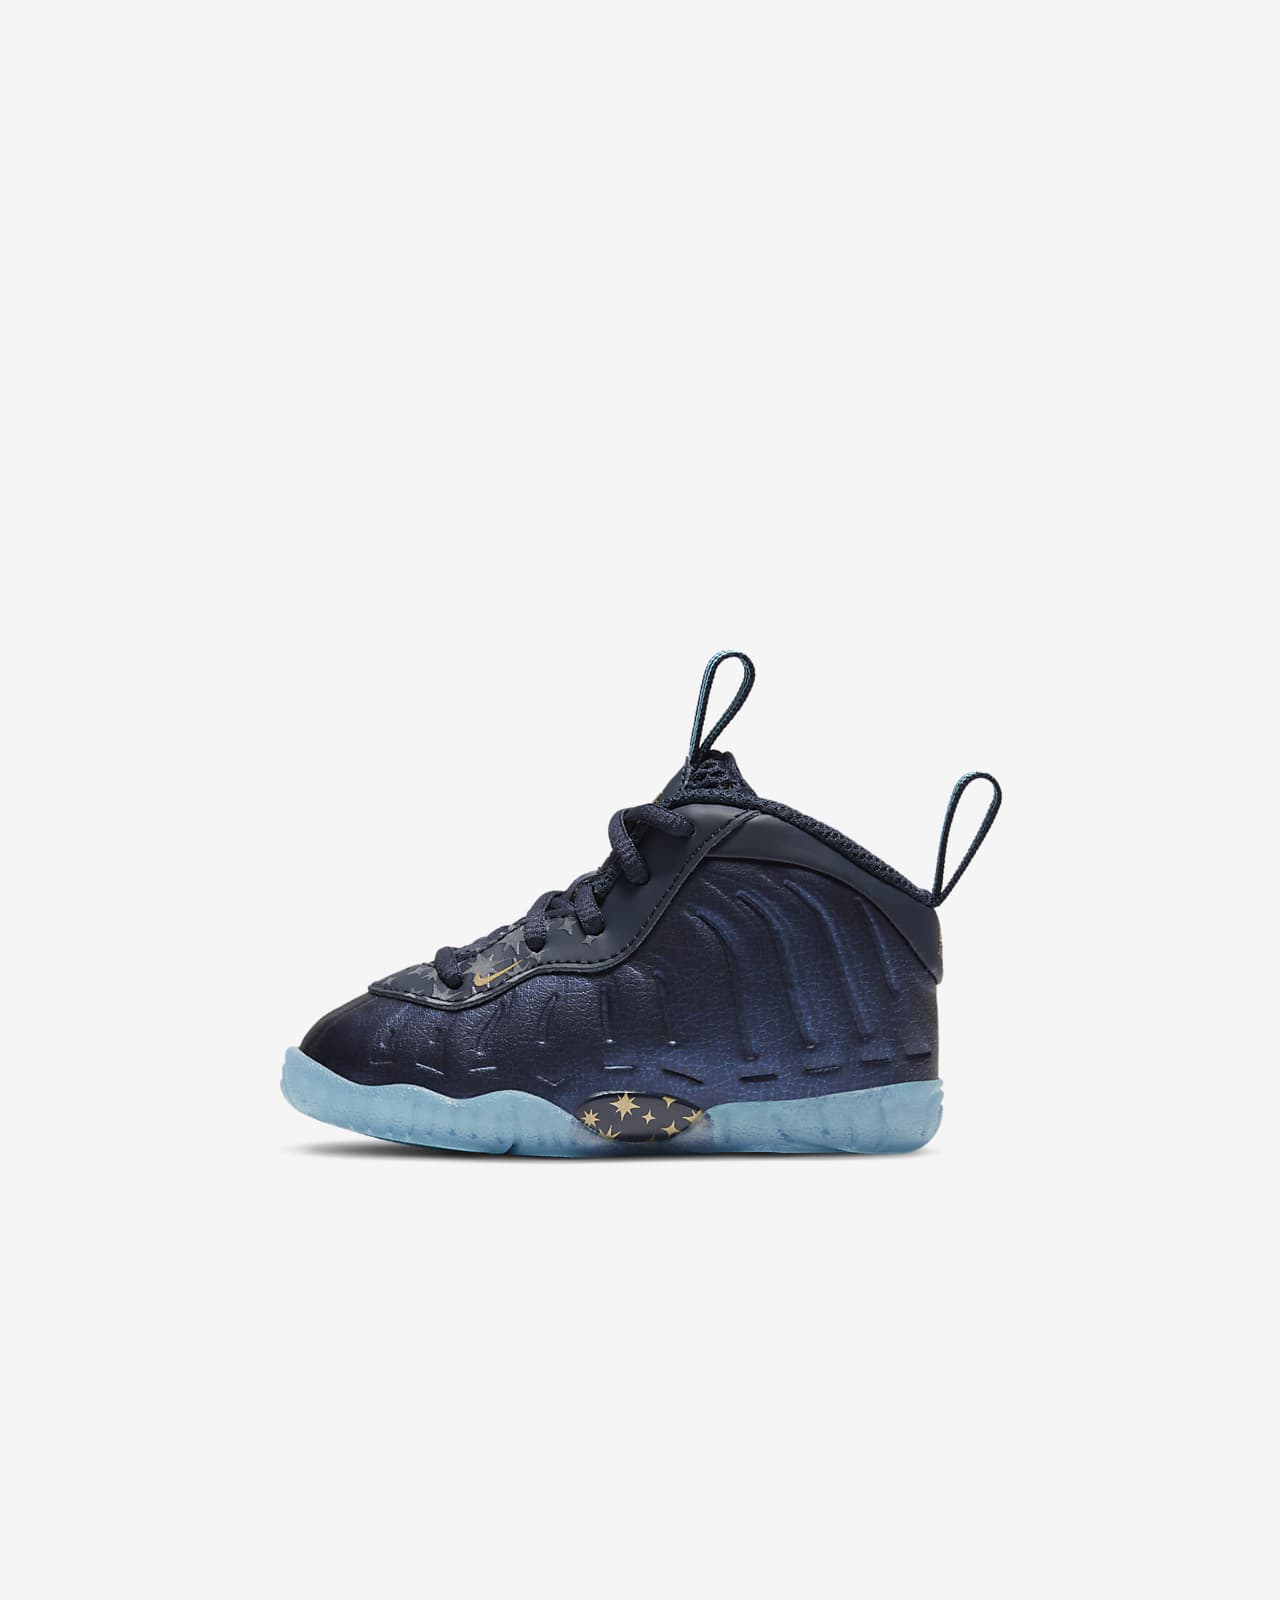 Air Foamposite One Premium Abalone Sneakeasy Exclusive ...